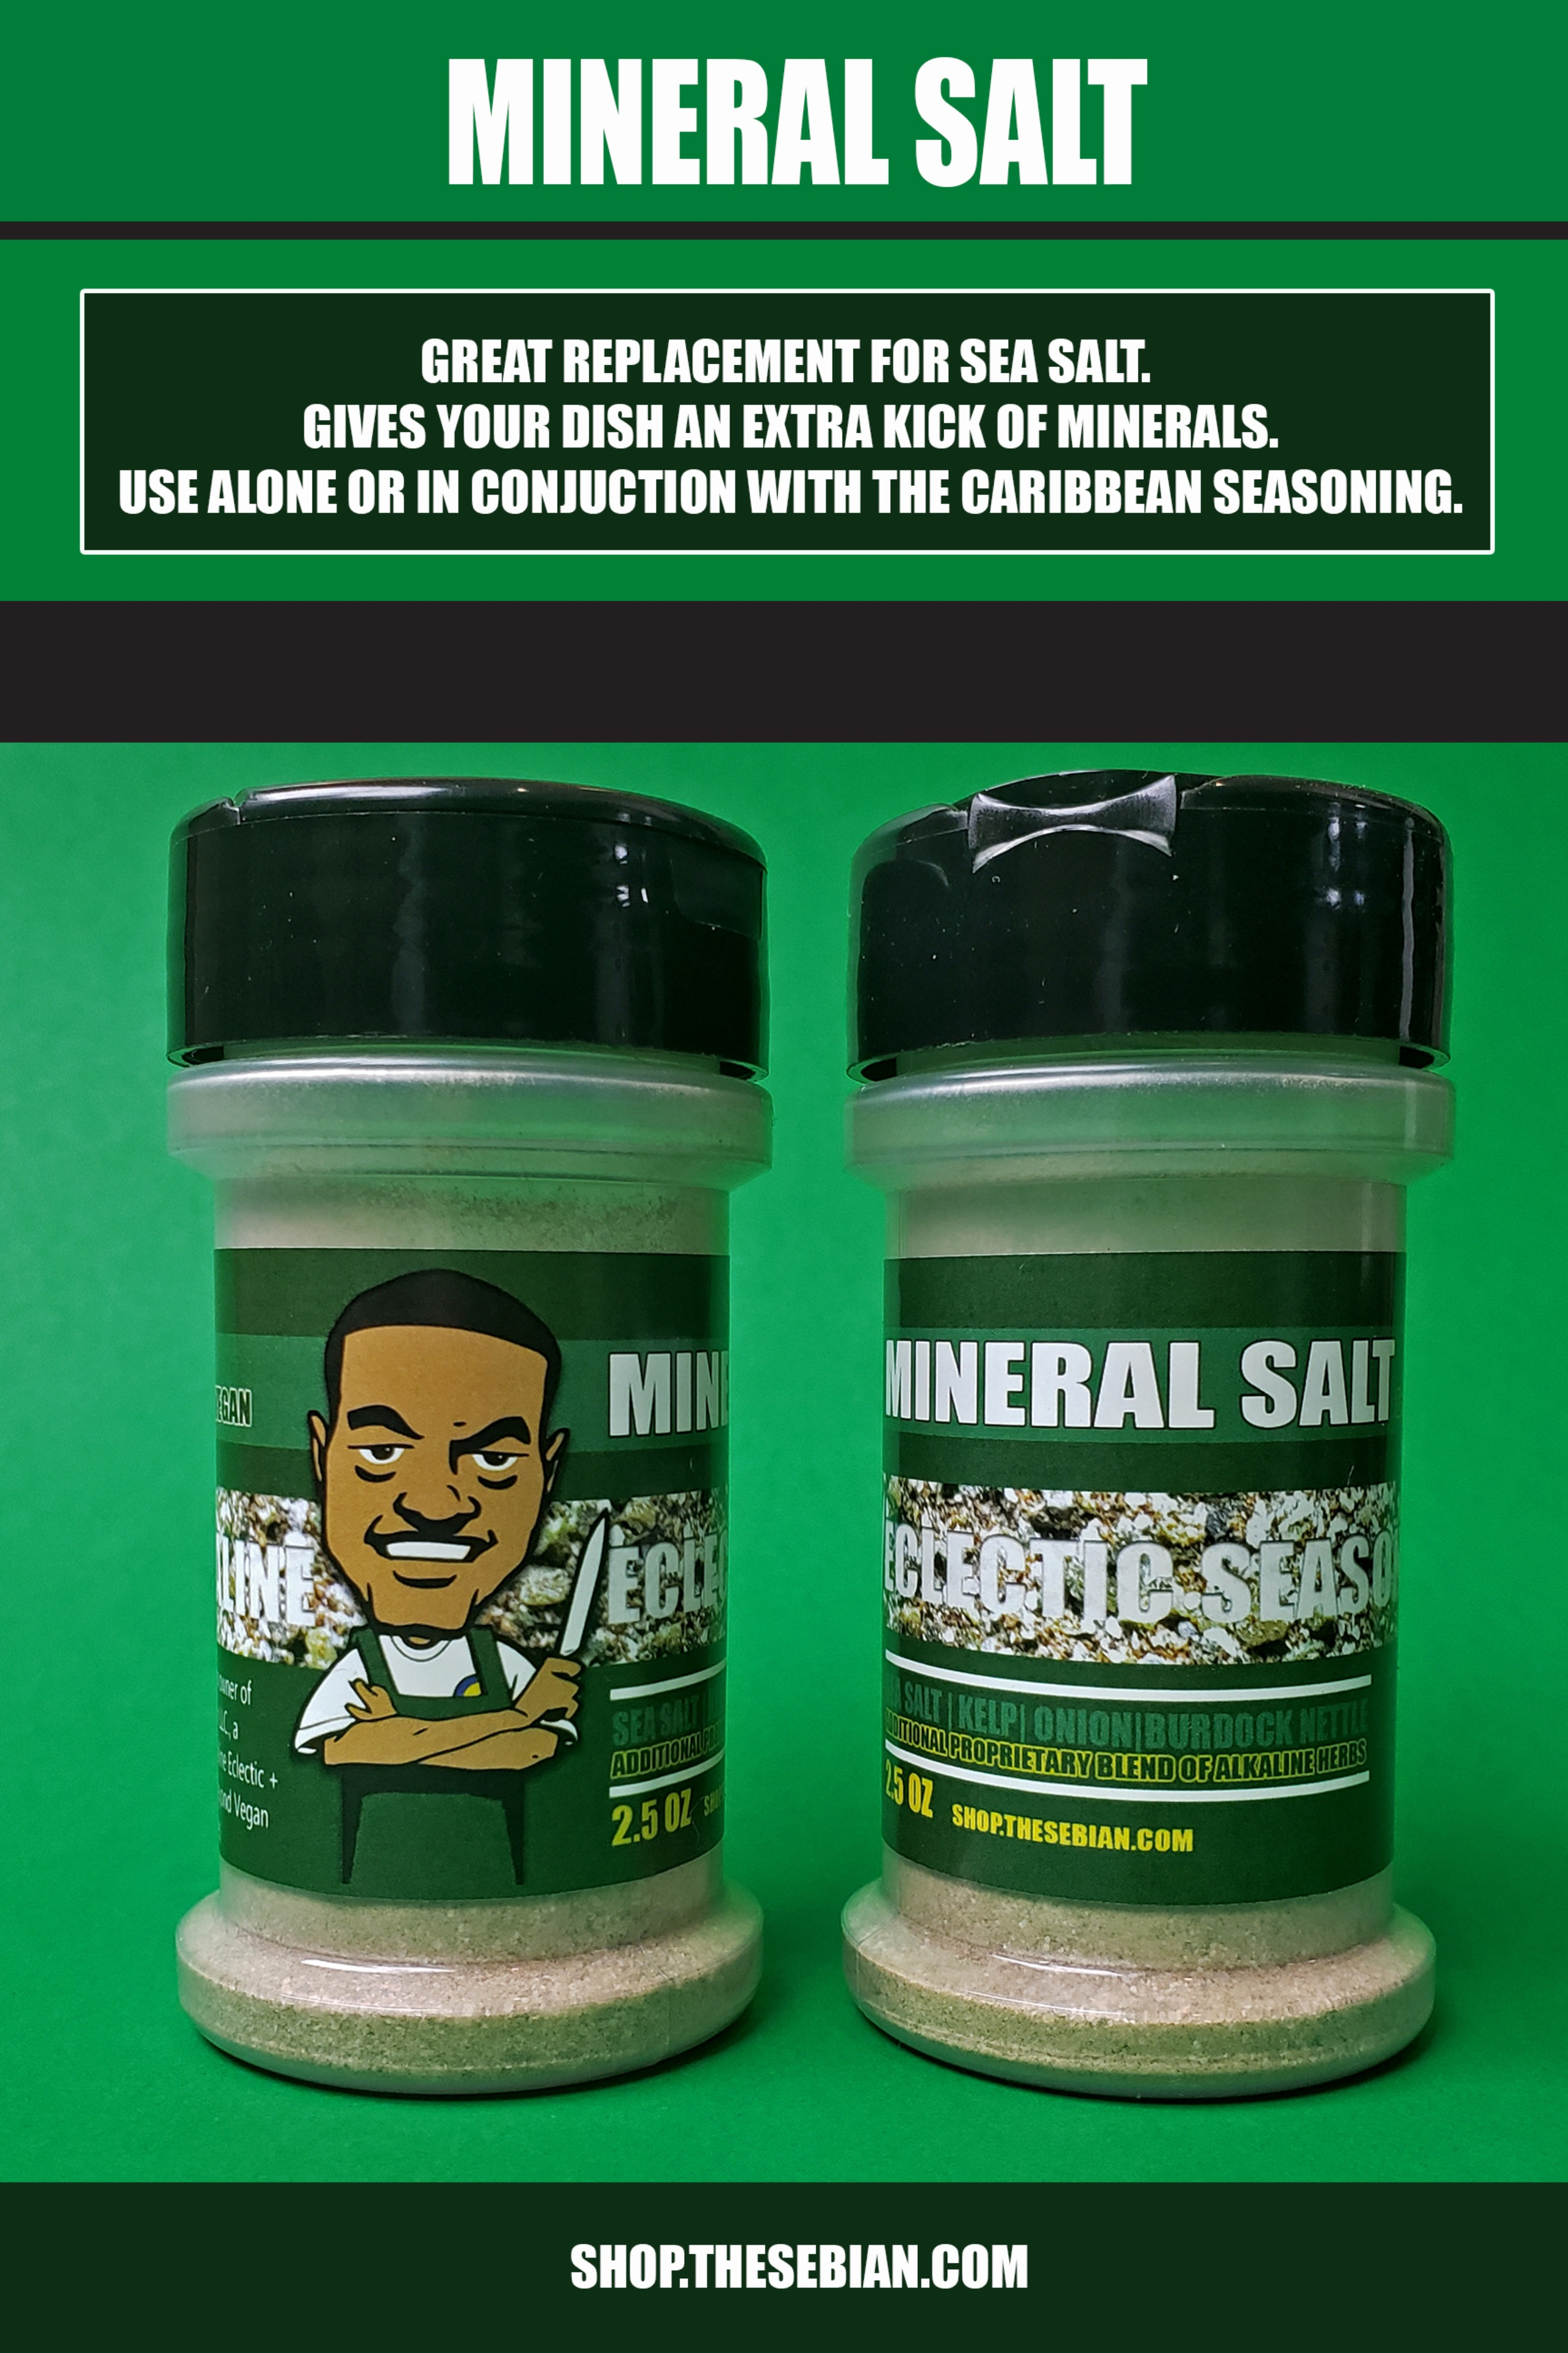 ALKALINE SEASONING 2 PACK